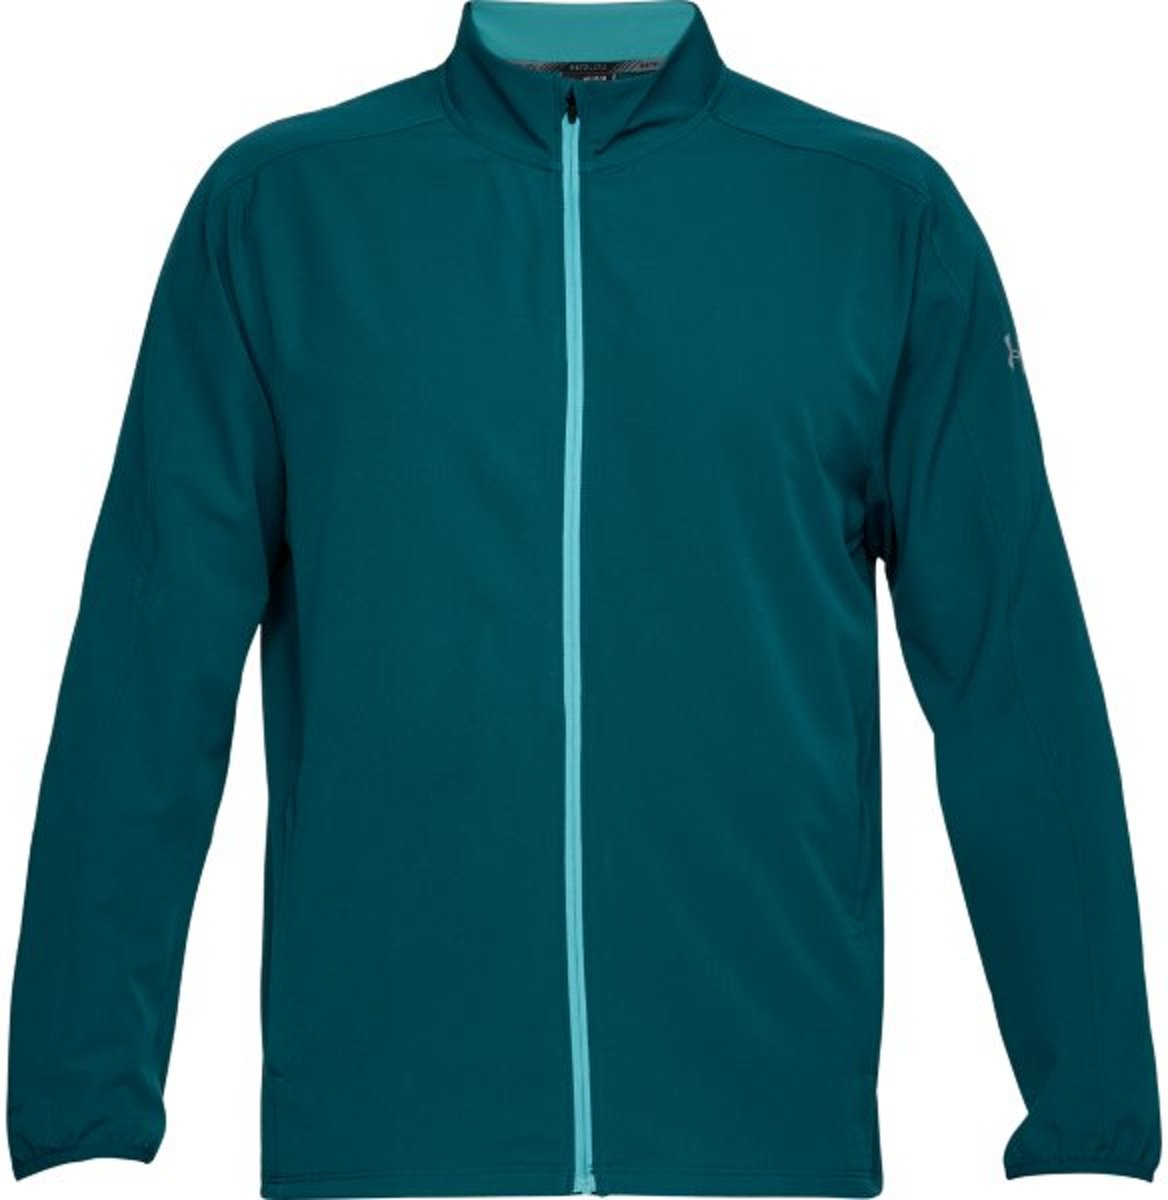 Under Armour Storm Out&Back Sweat Jacket Sportjas - Heren - Maat S - Tourmaline Teal